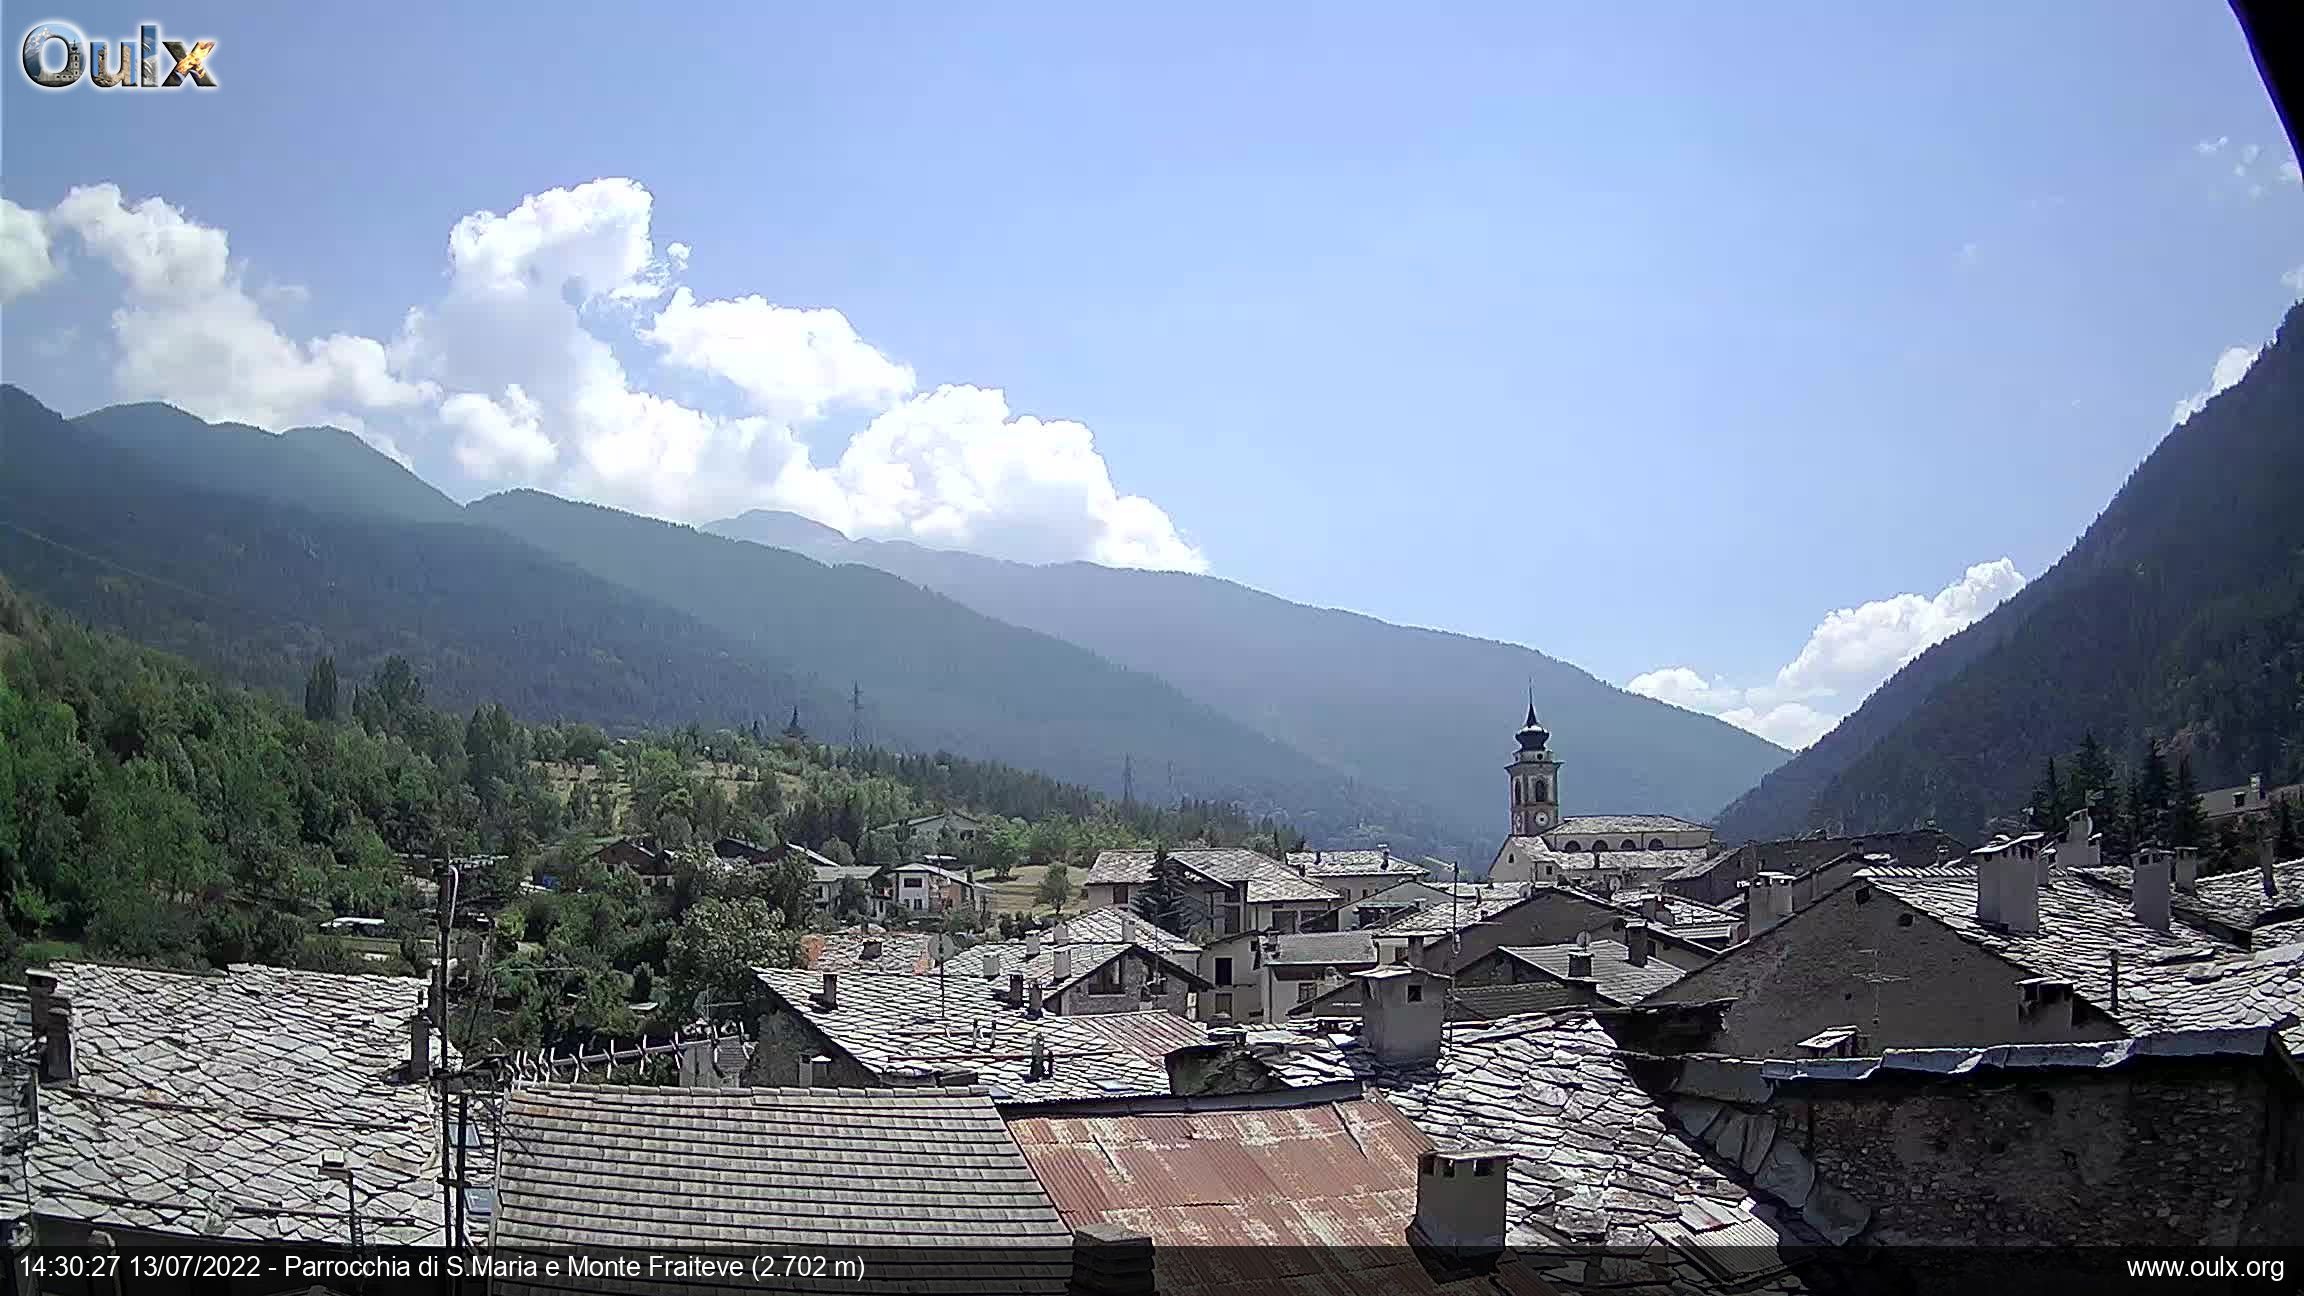 Webcam di Oulx.org